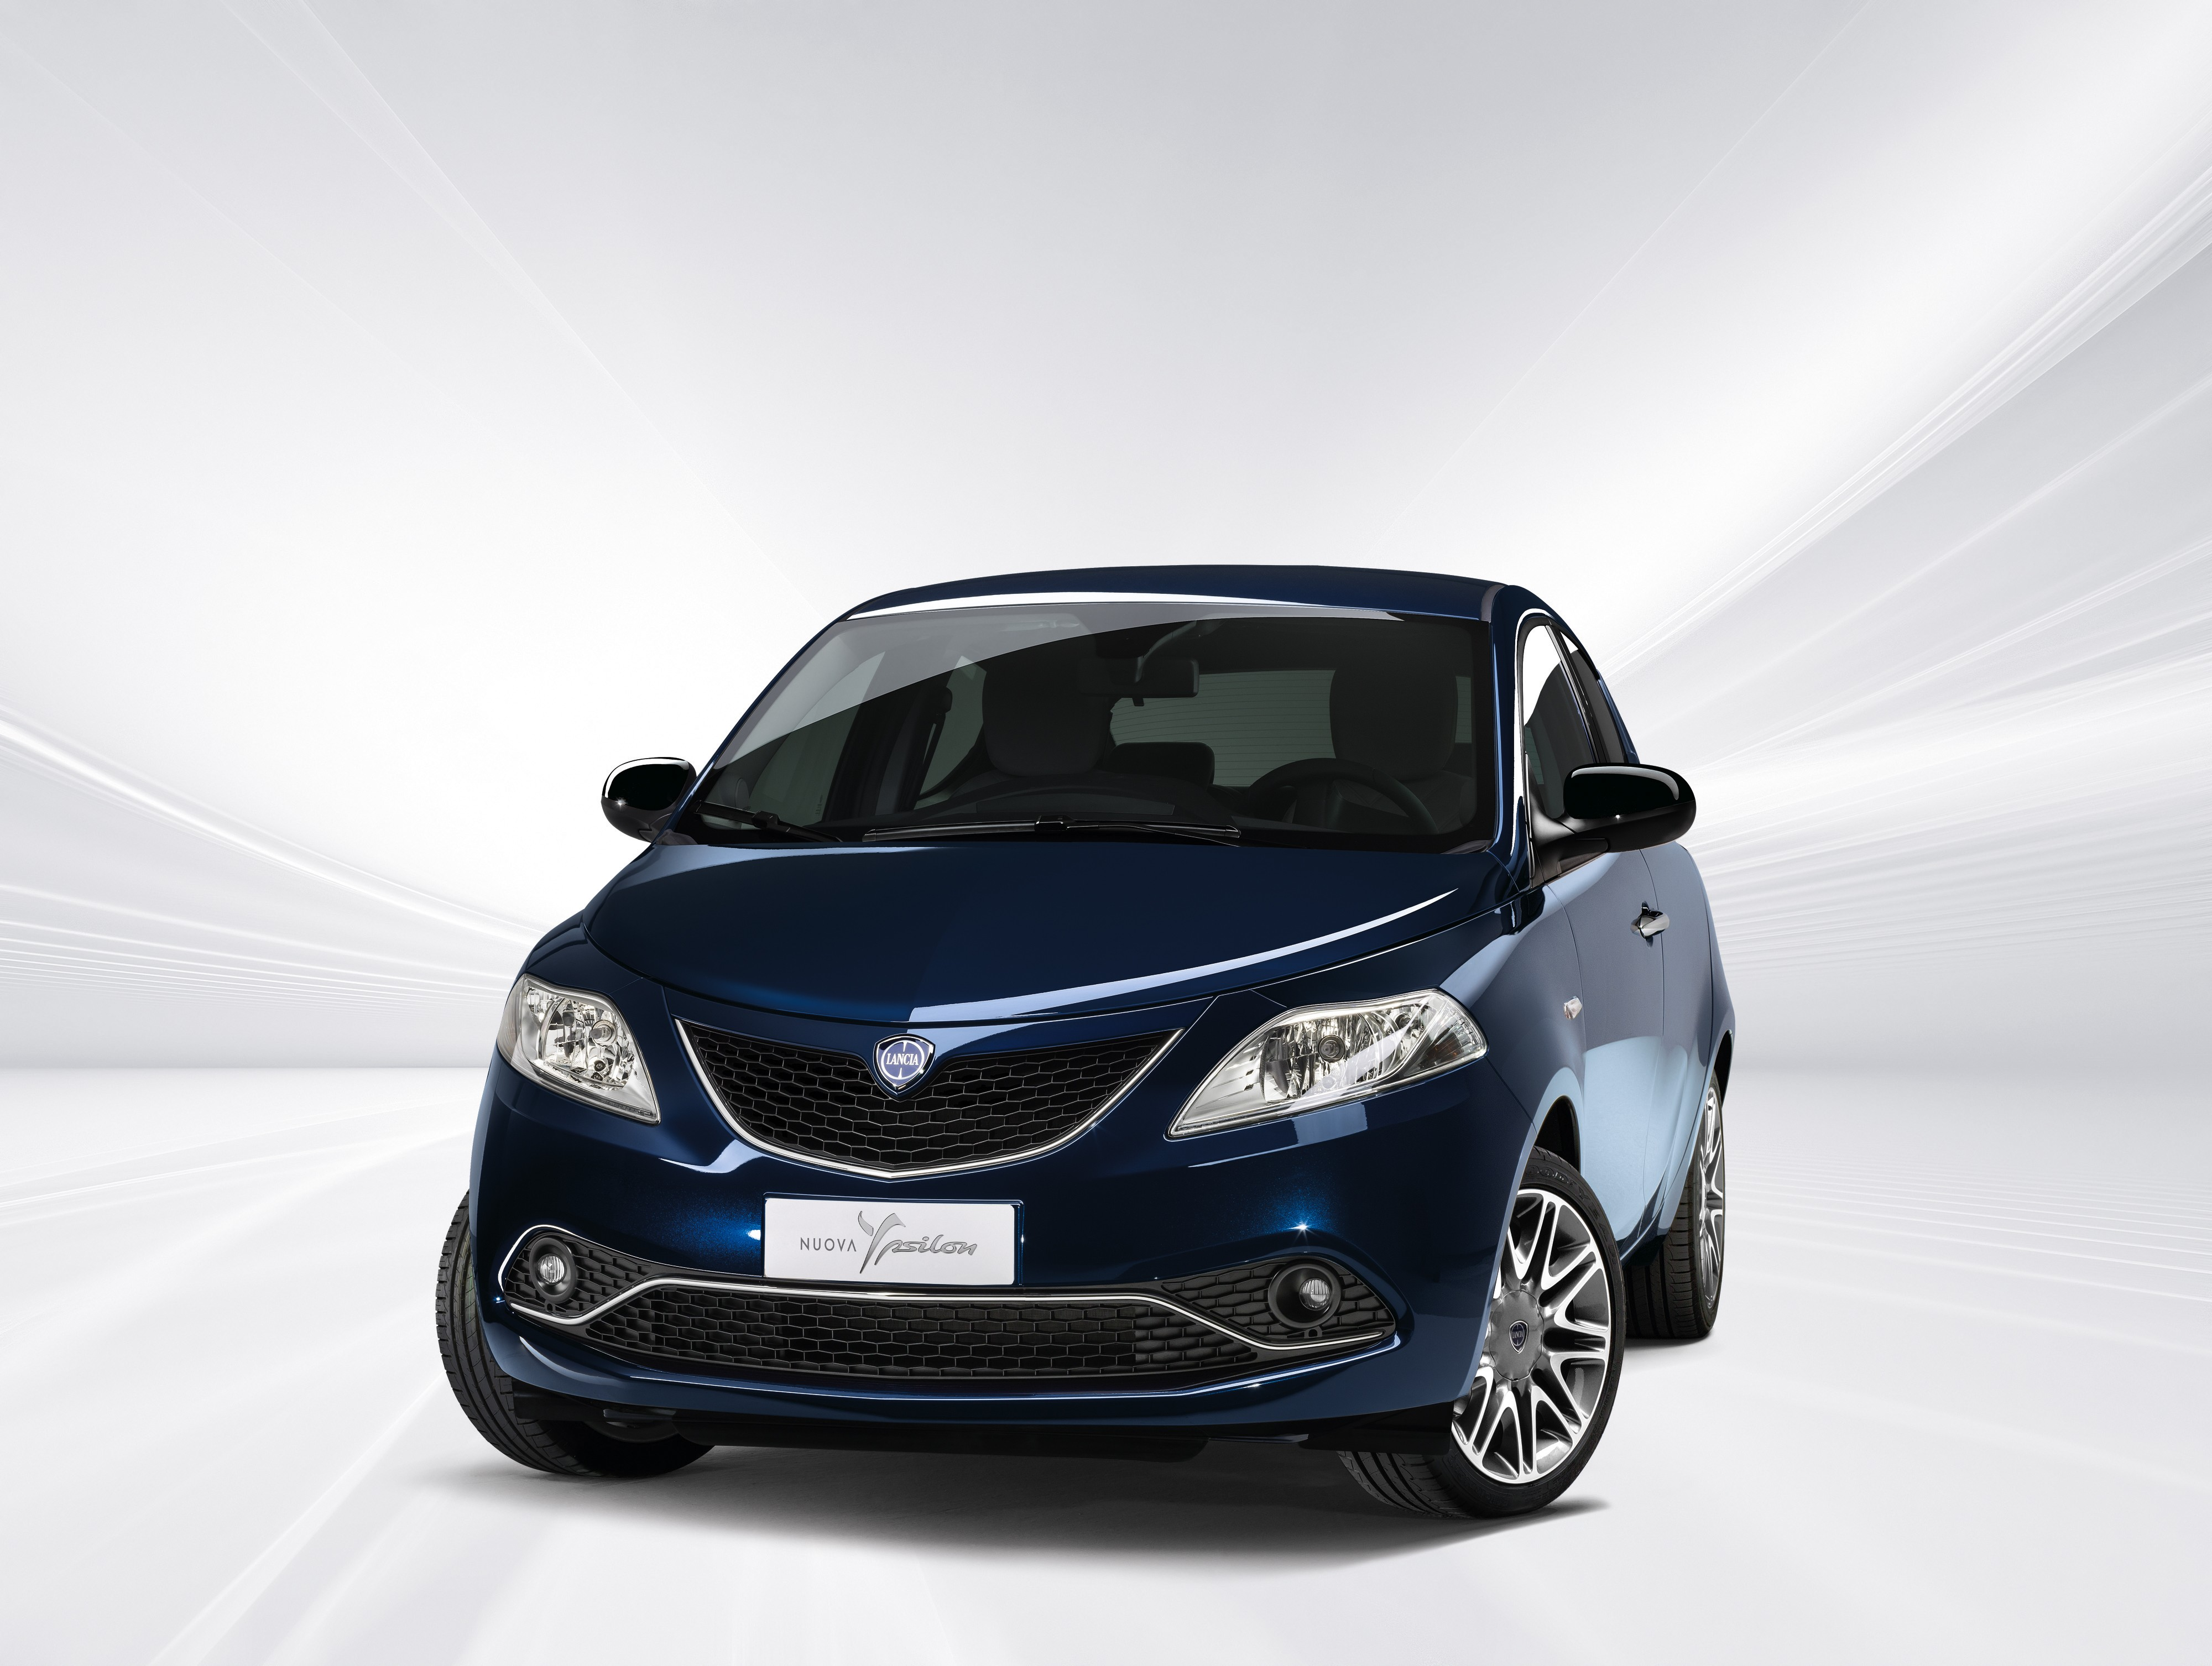 lancia ypsilon specs photos 2015 2016 2017 2018 2019 autoevolution. Black Bedroom Furniture Sets. Home Design Ideas